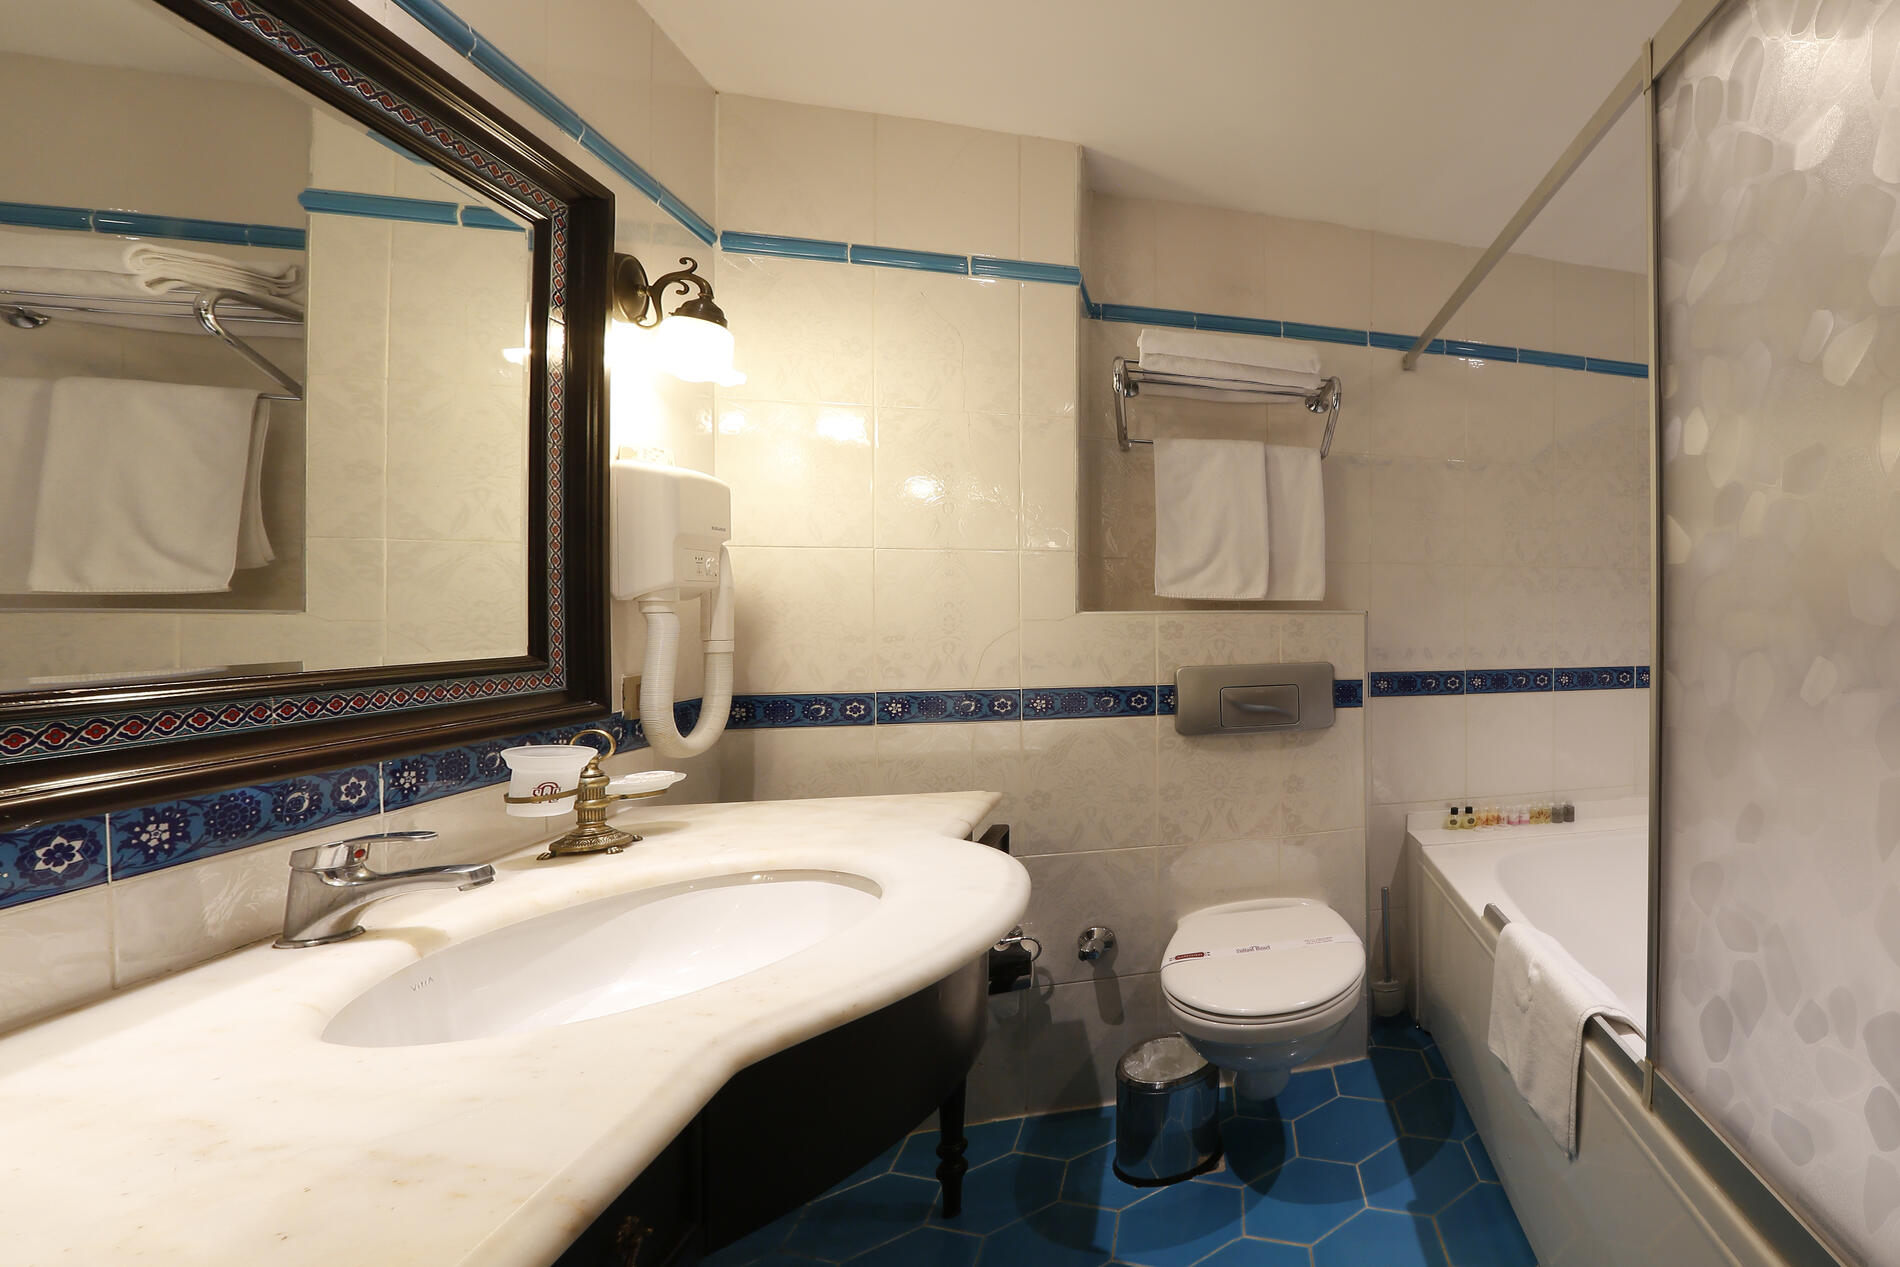 Bathroom at Sultanahmet Palace Hotel in Istanbul